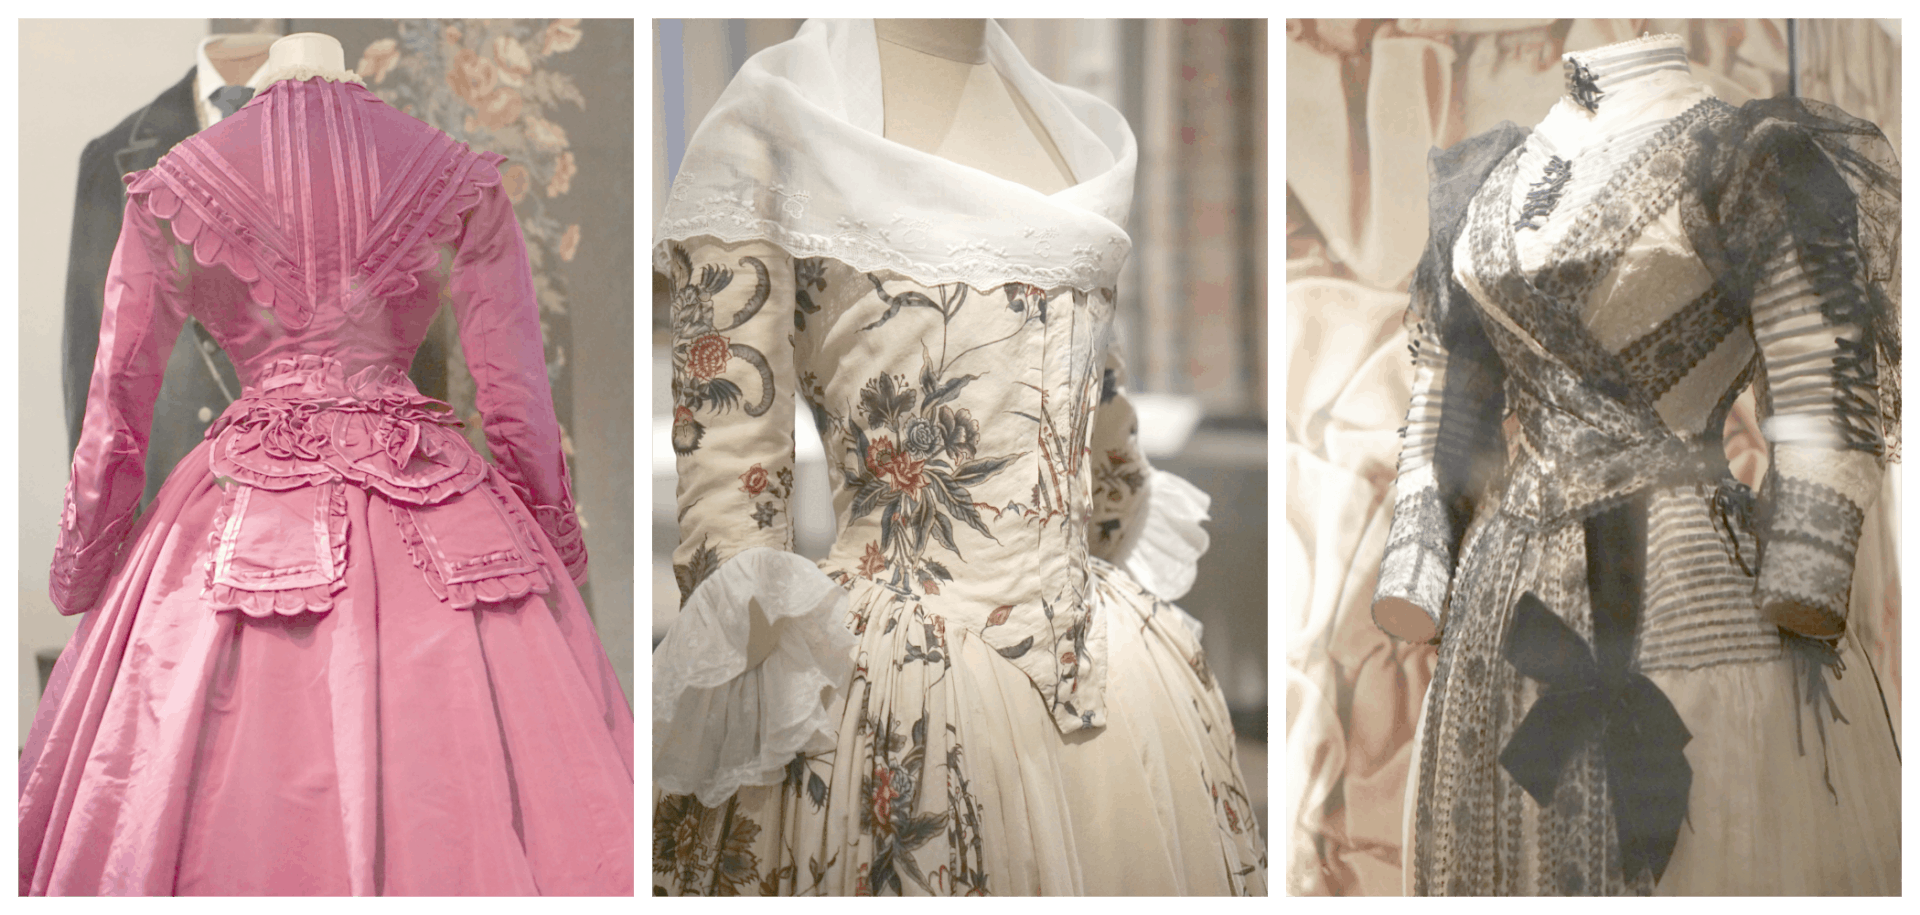 Fashion At The Victoria & Albert, My Sunday Photo